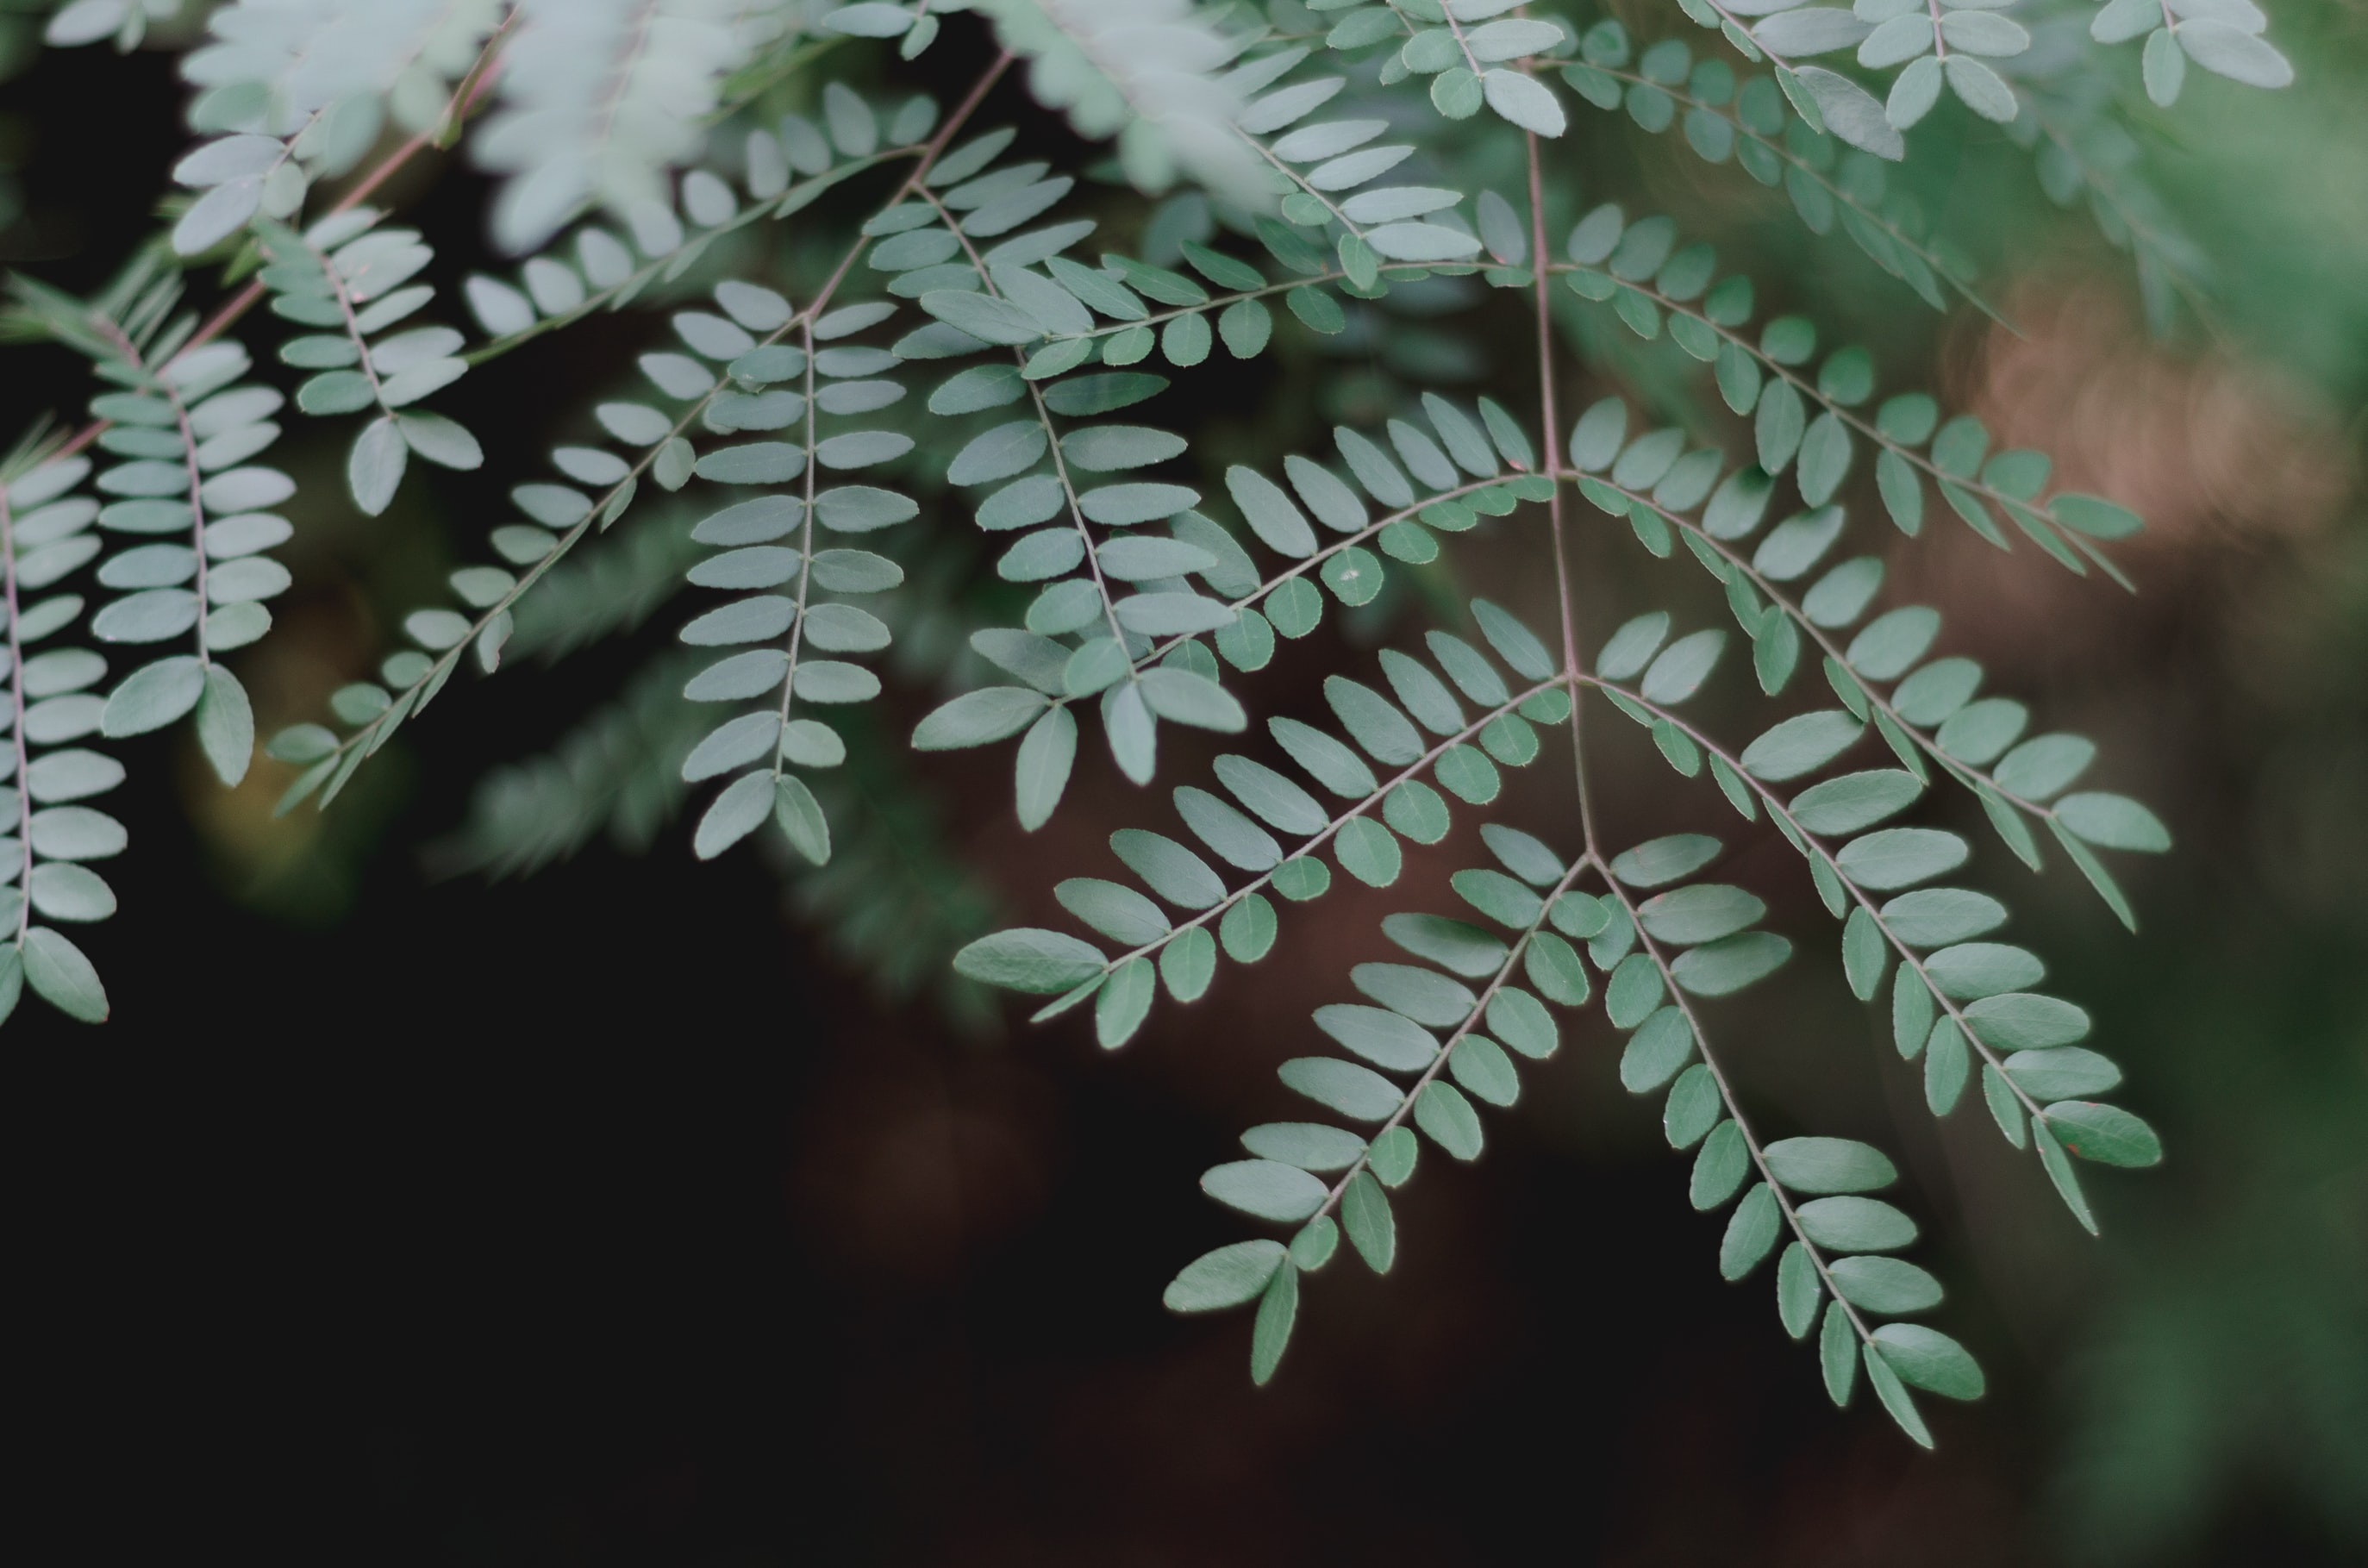 closeup of fern leafed plant